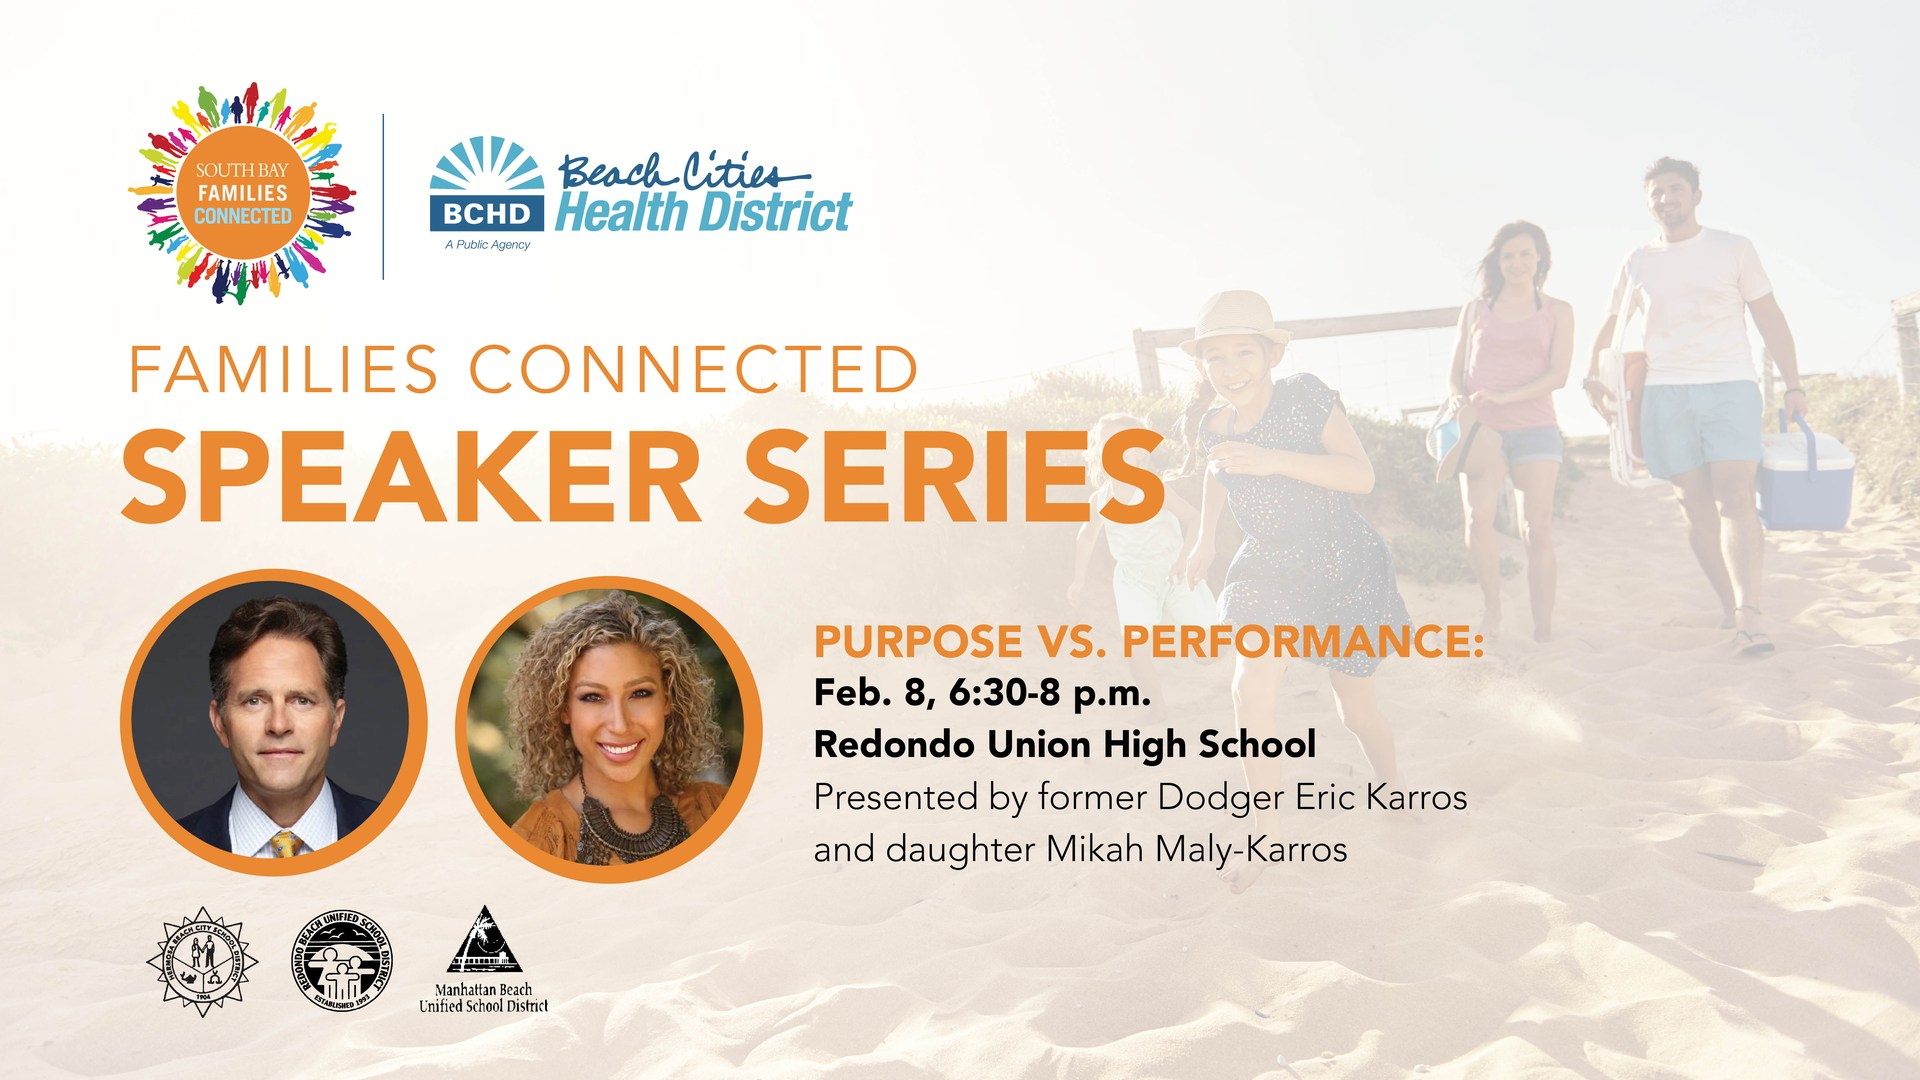 South Bay Connected Speaker Series February 8, 2018